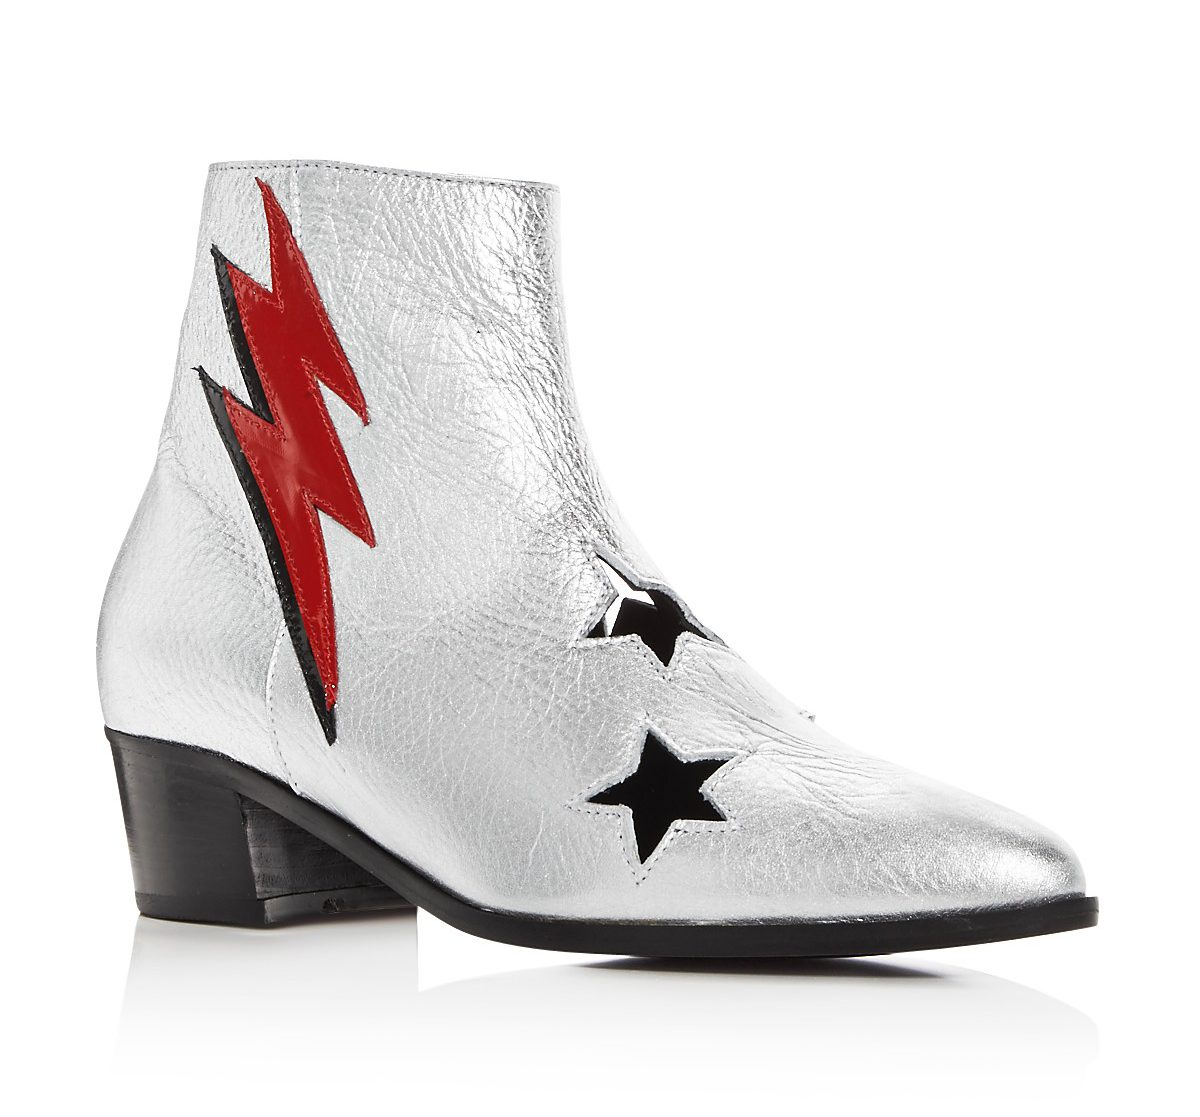 Wanted: Boots With a Kick